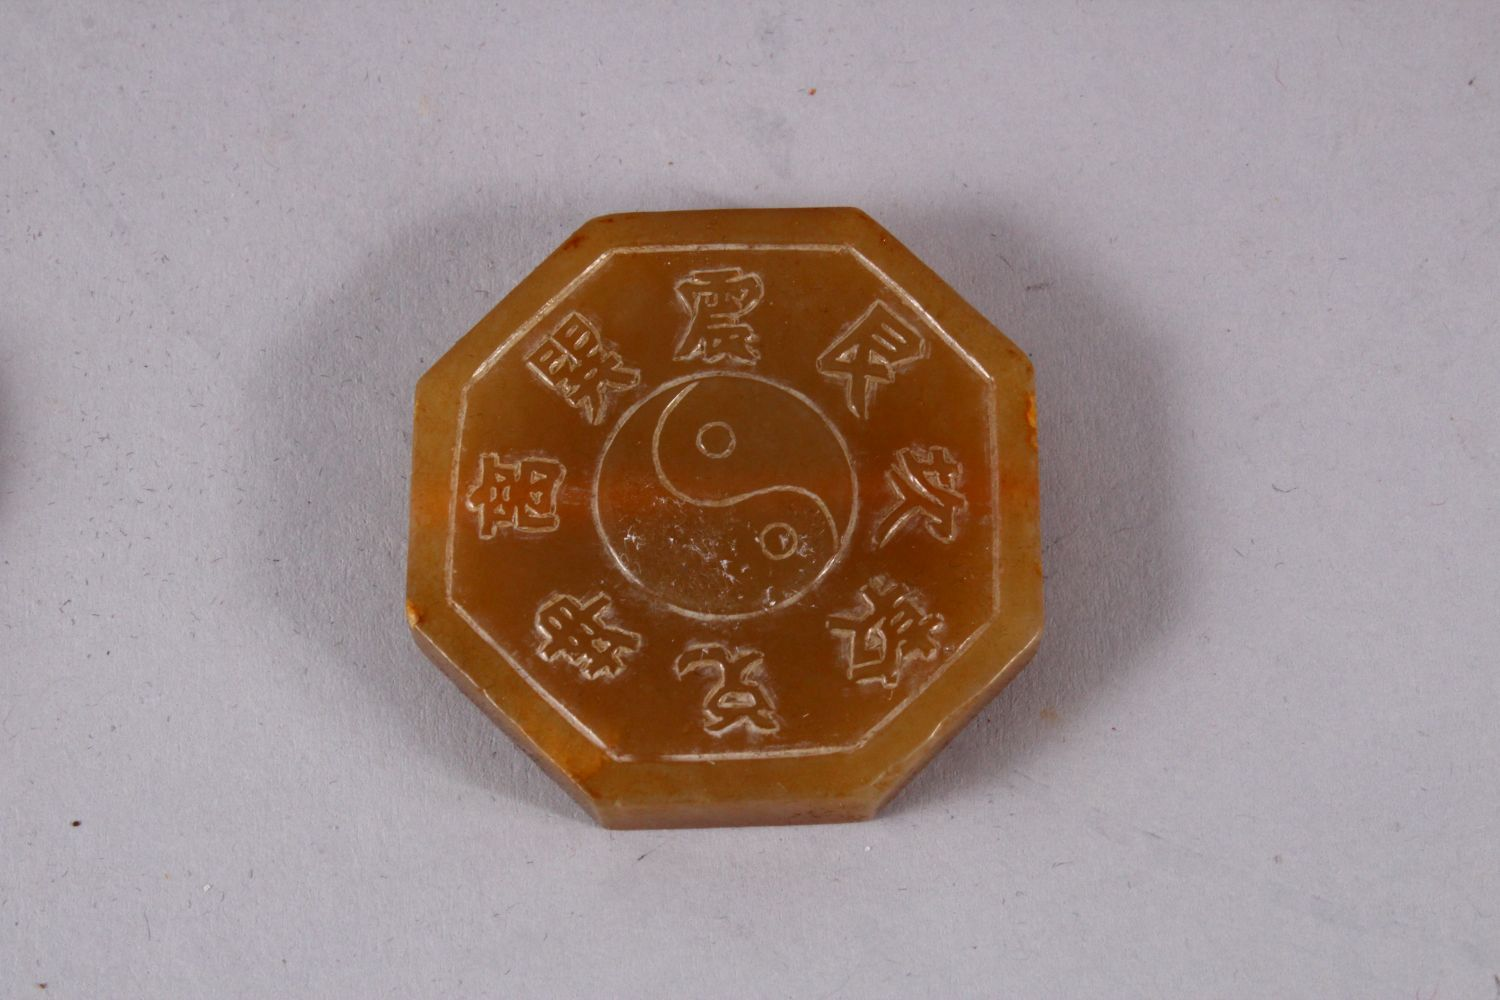 THREE CHINESE CARVED JADE PENDANTS, One carved in the form of TWIN BATS AND SYMBOLS, 6.5cm, one - Image 4 of 5